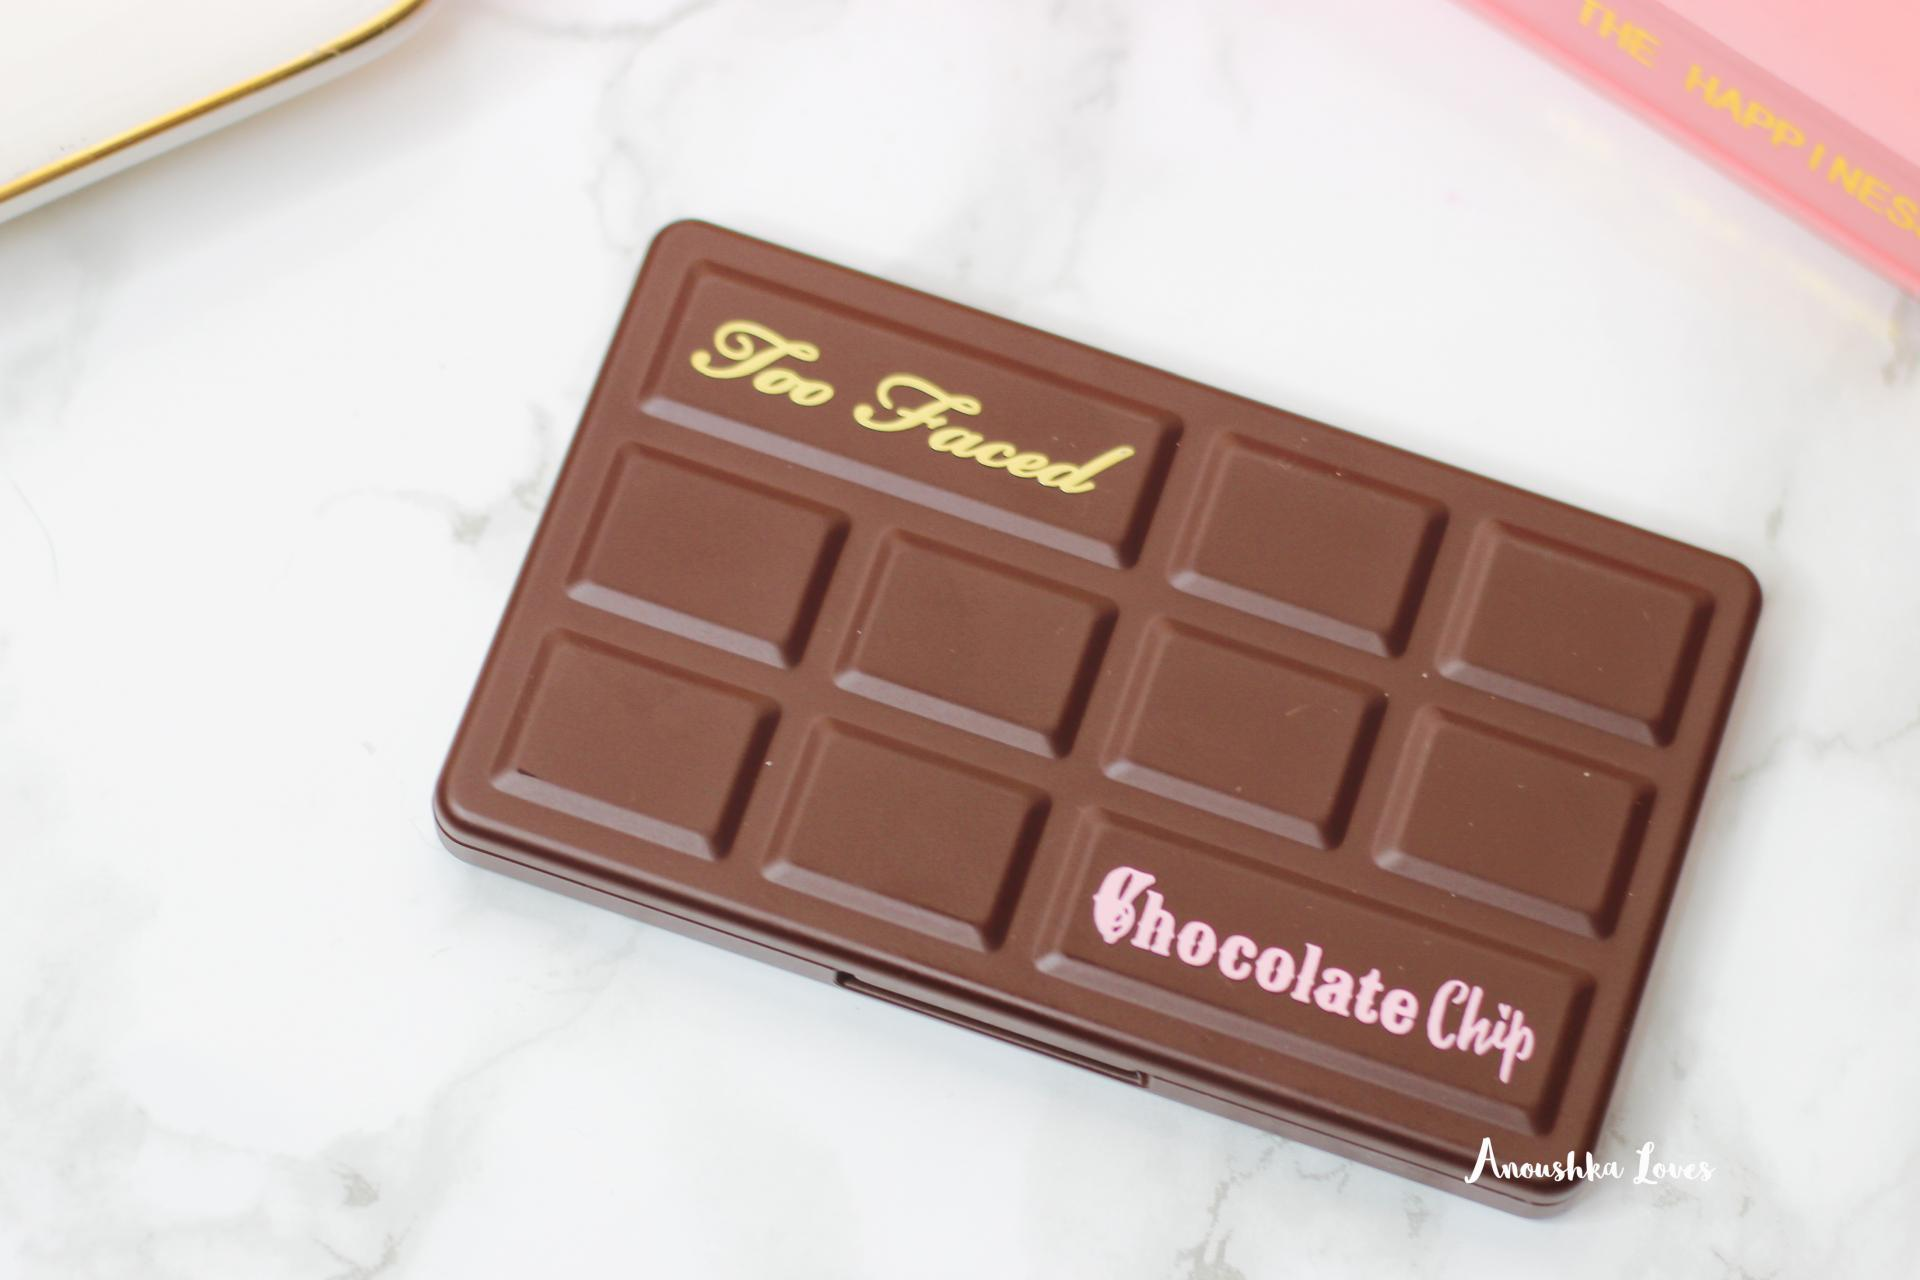 Too Faced Matte Chocolate Chip palette closed